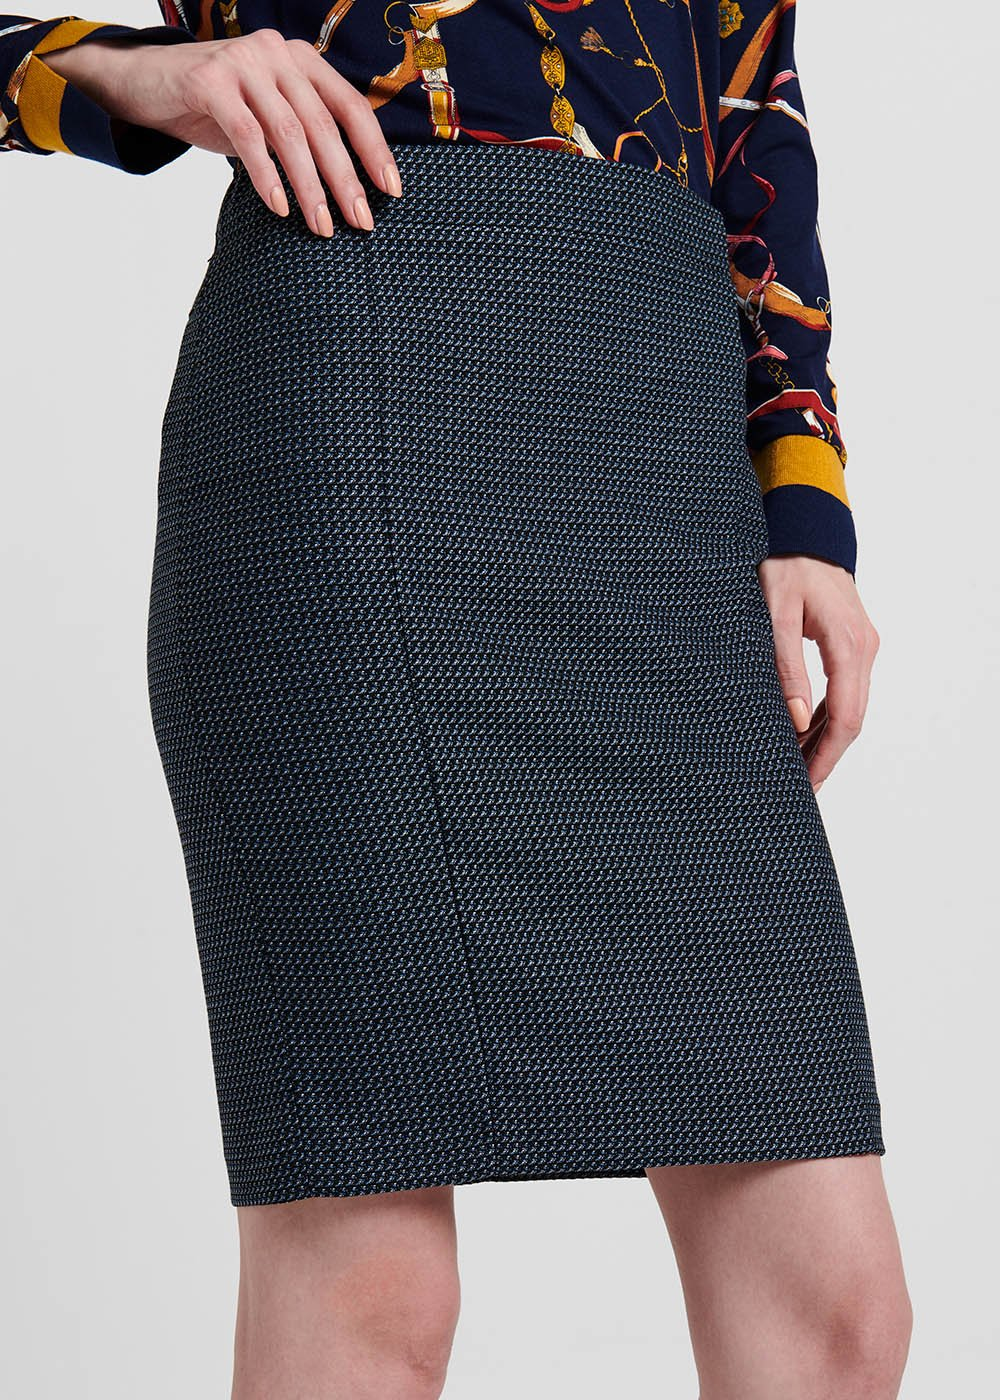 Pencil skirt in jacquard fabric with blue micro pattern - Blue / Black Fantasia - Woman